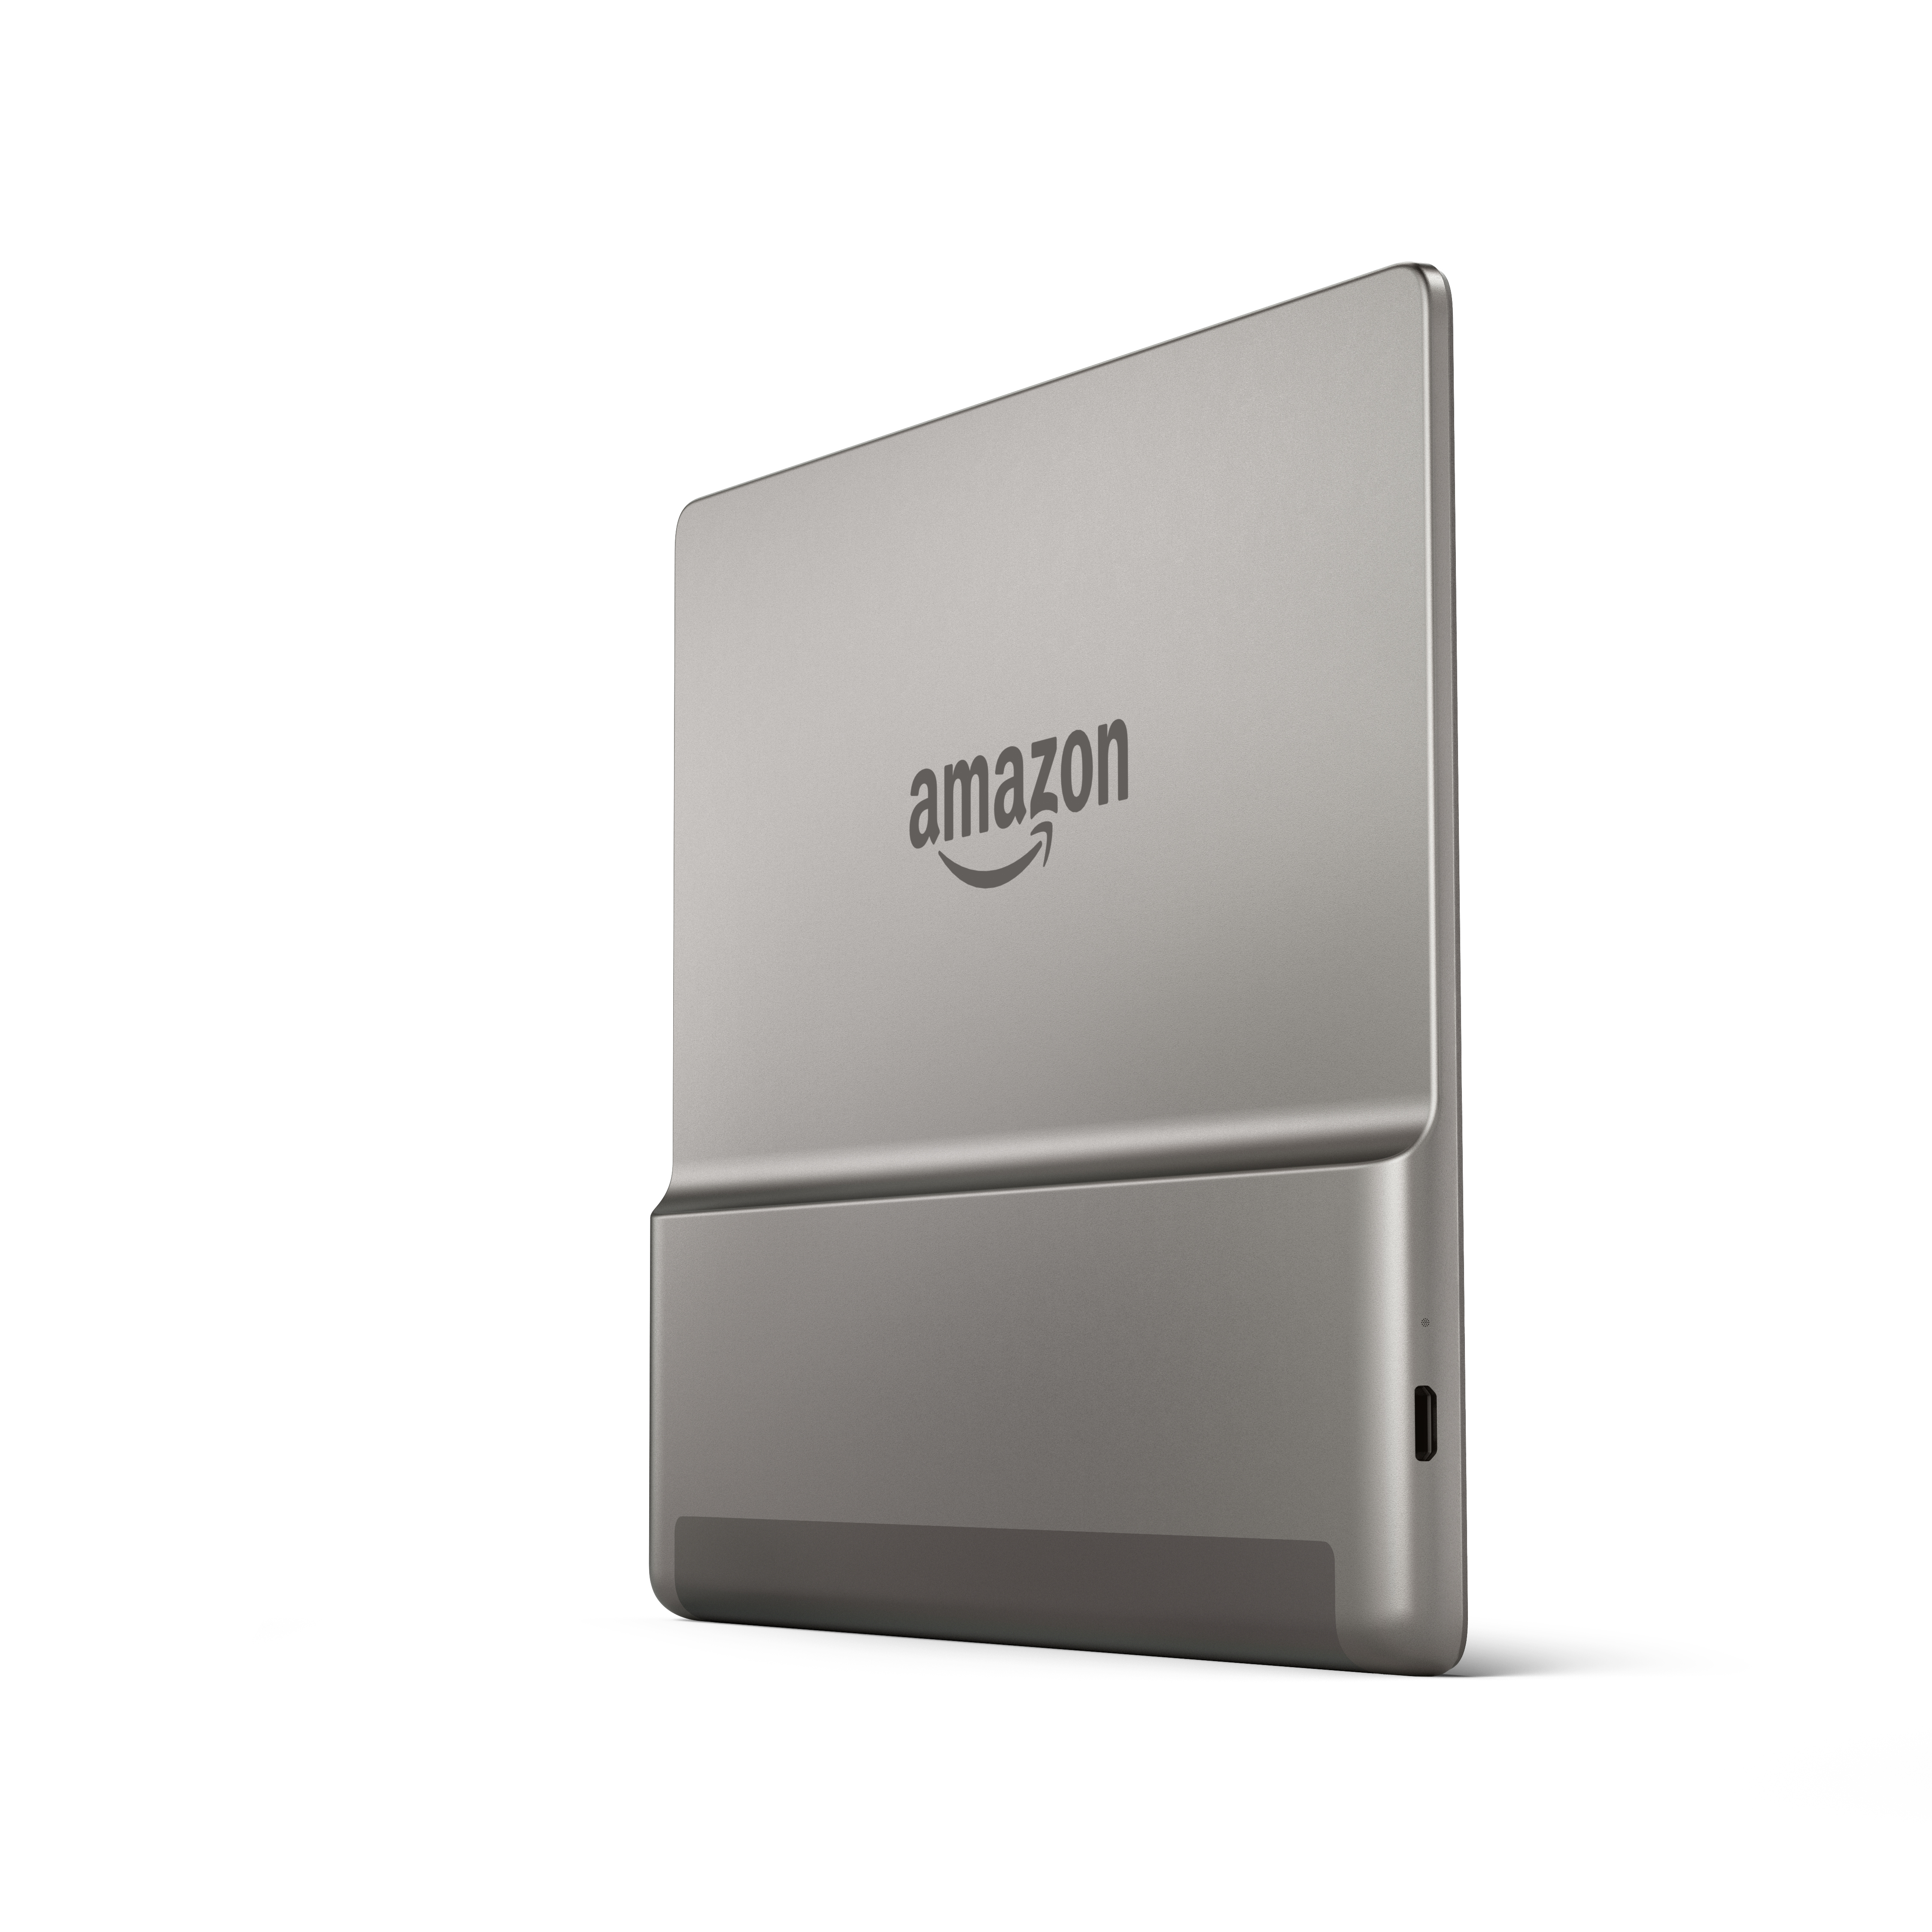 Meet the All-New Kindle Oasis: Featuring a 7-inch, 300 ppi Display